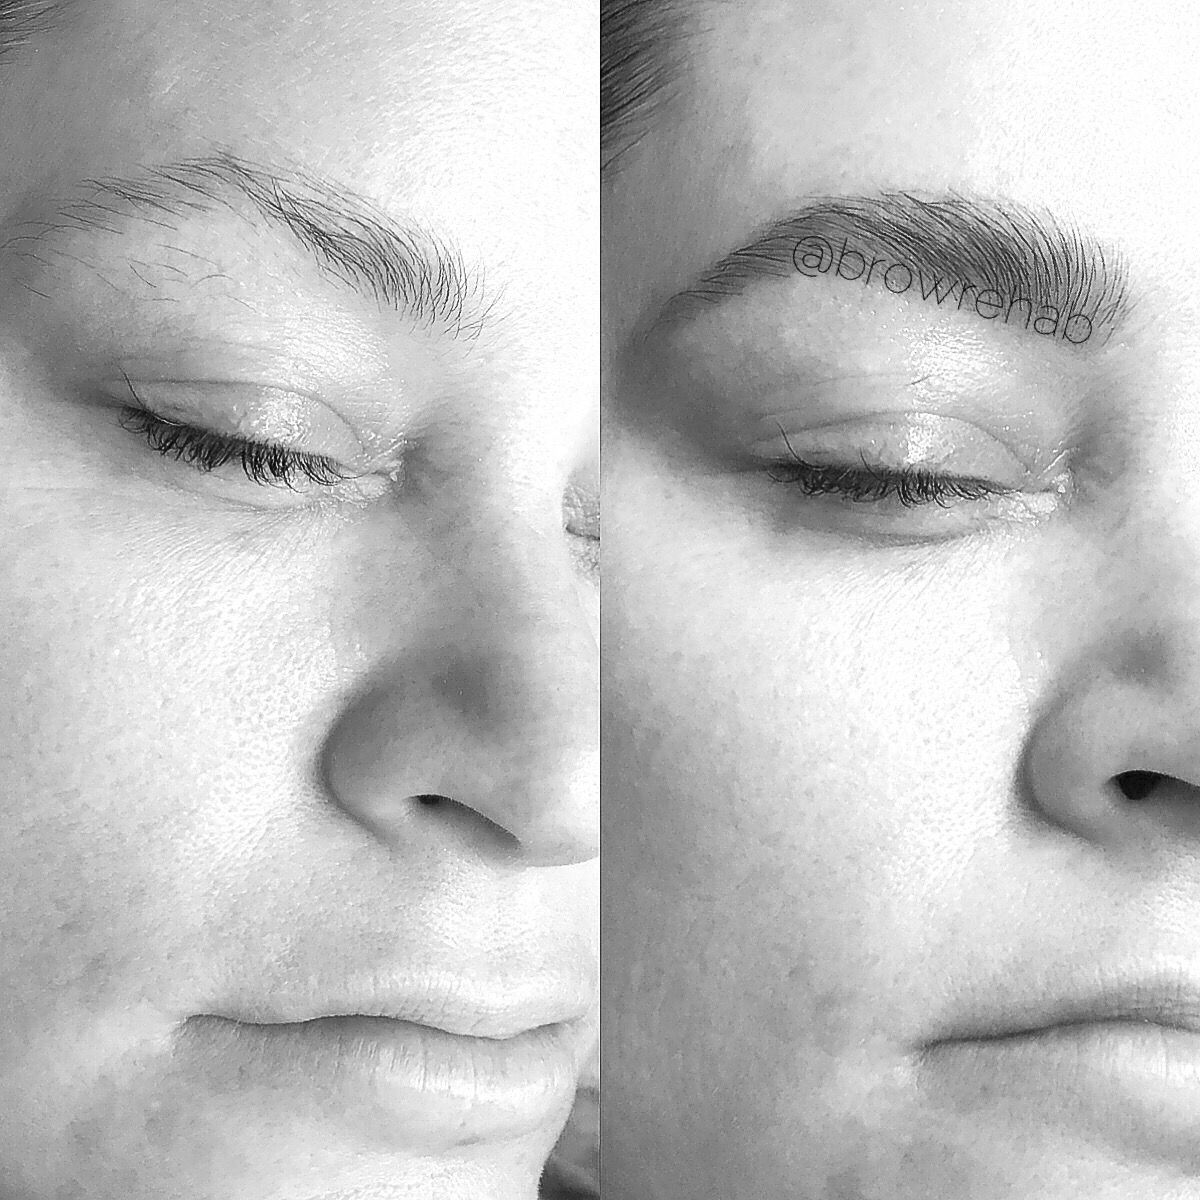 Brow Rehab before and after #browtint and #browwax  #browrehab